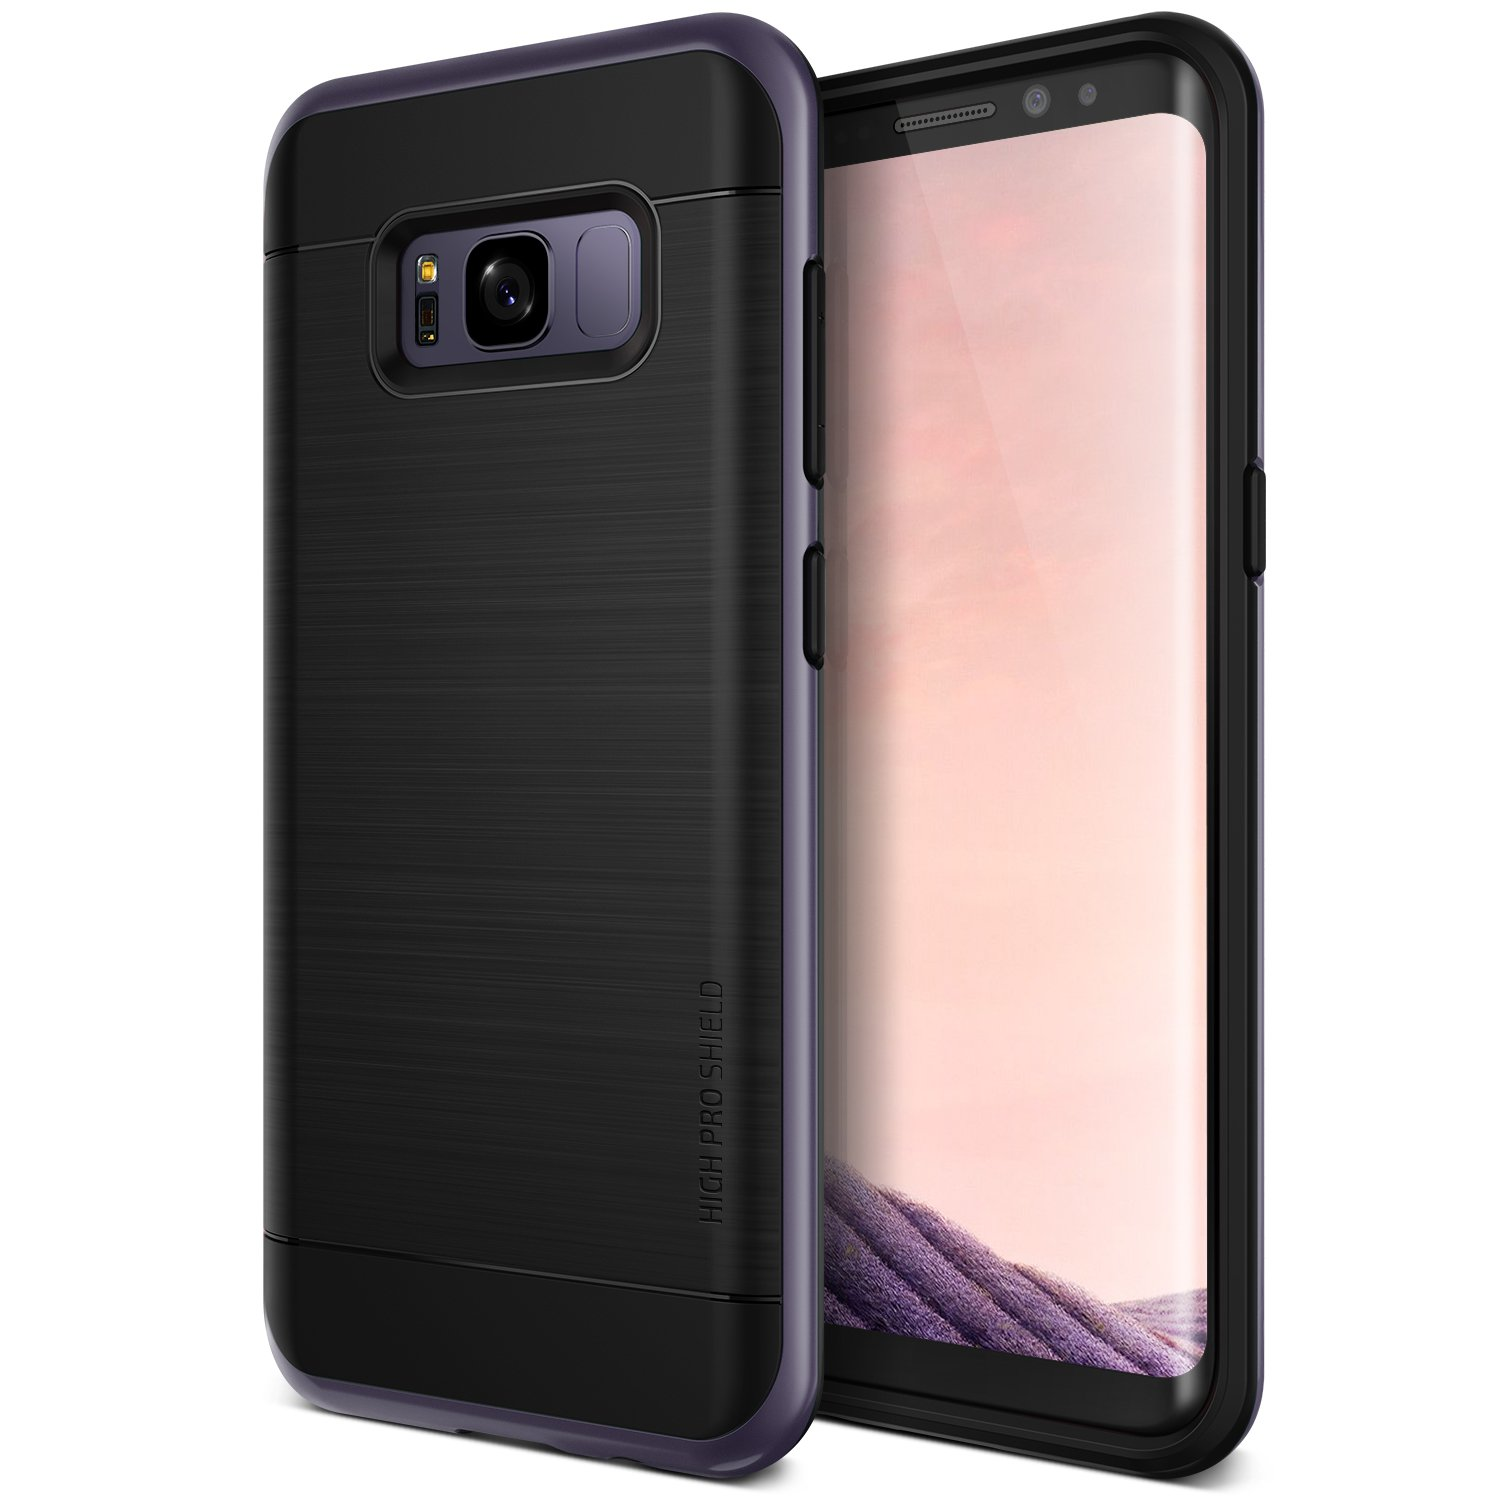 Galaxy S8 Case, VRS DESIGN Dual Layer Protective Phone Case [Orchid Gray] Premium Shockproof TPU Heavy Duty PC Bumper Cover for Samsung Galaxy S8 [High Pro Shield]